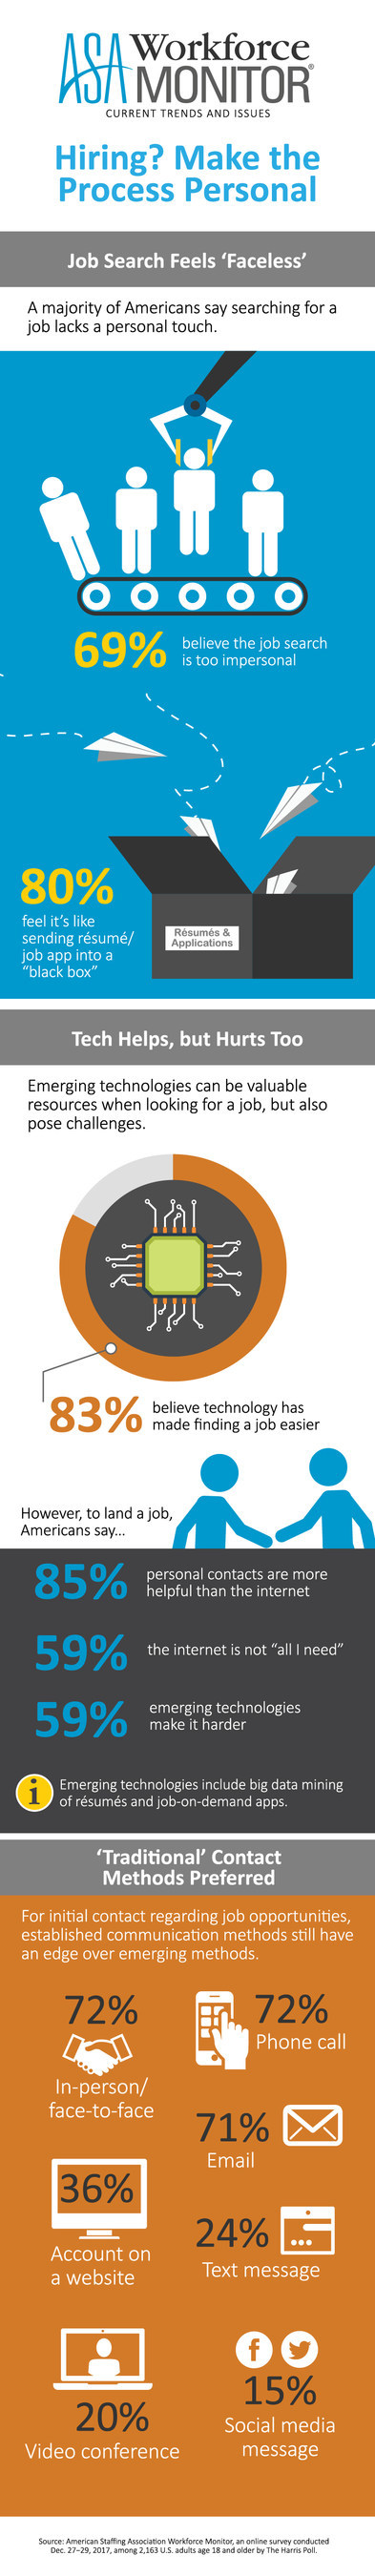 "About seven in 10 Americans (69%) believe that the job search today is too impersonal, according to the results of the latest American Staffing Association Workforce Monitor survey of more than 2,100 U.S. adults conducted online by The Harris Poll. And eight in 10 (80%) say that applying for a job feels like sending their résumé or job application into a ""black box."""